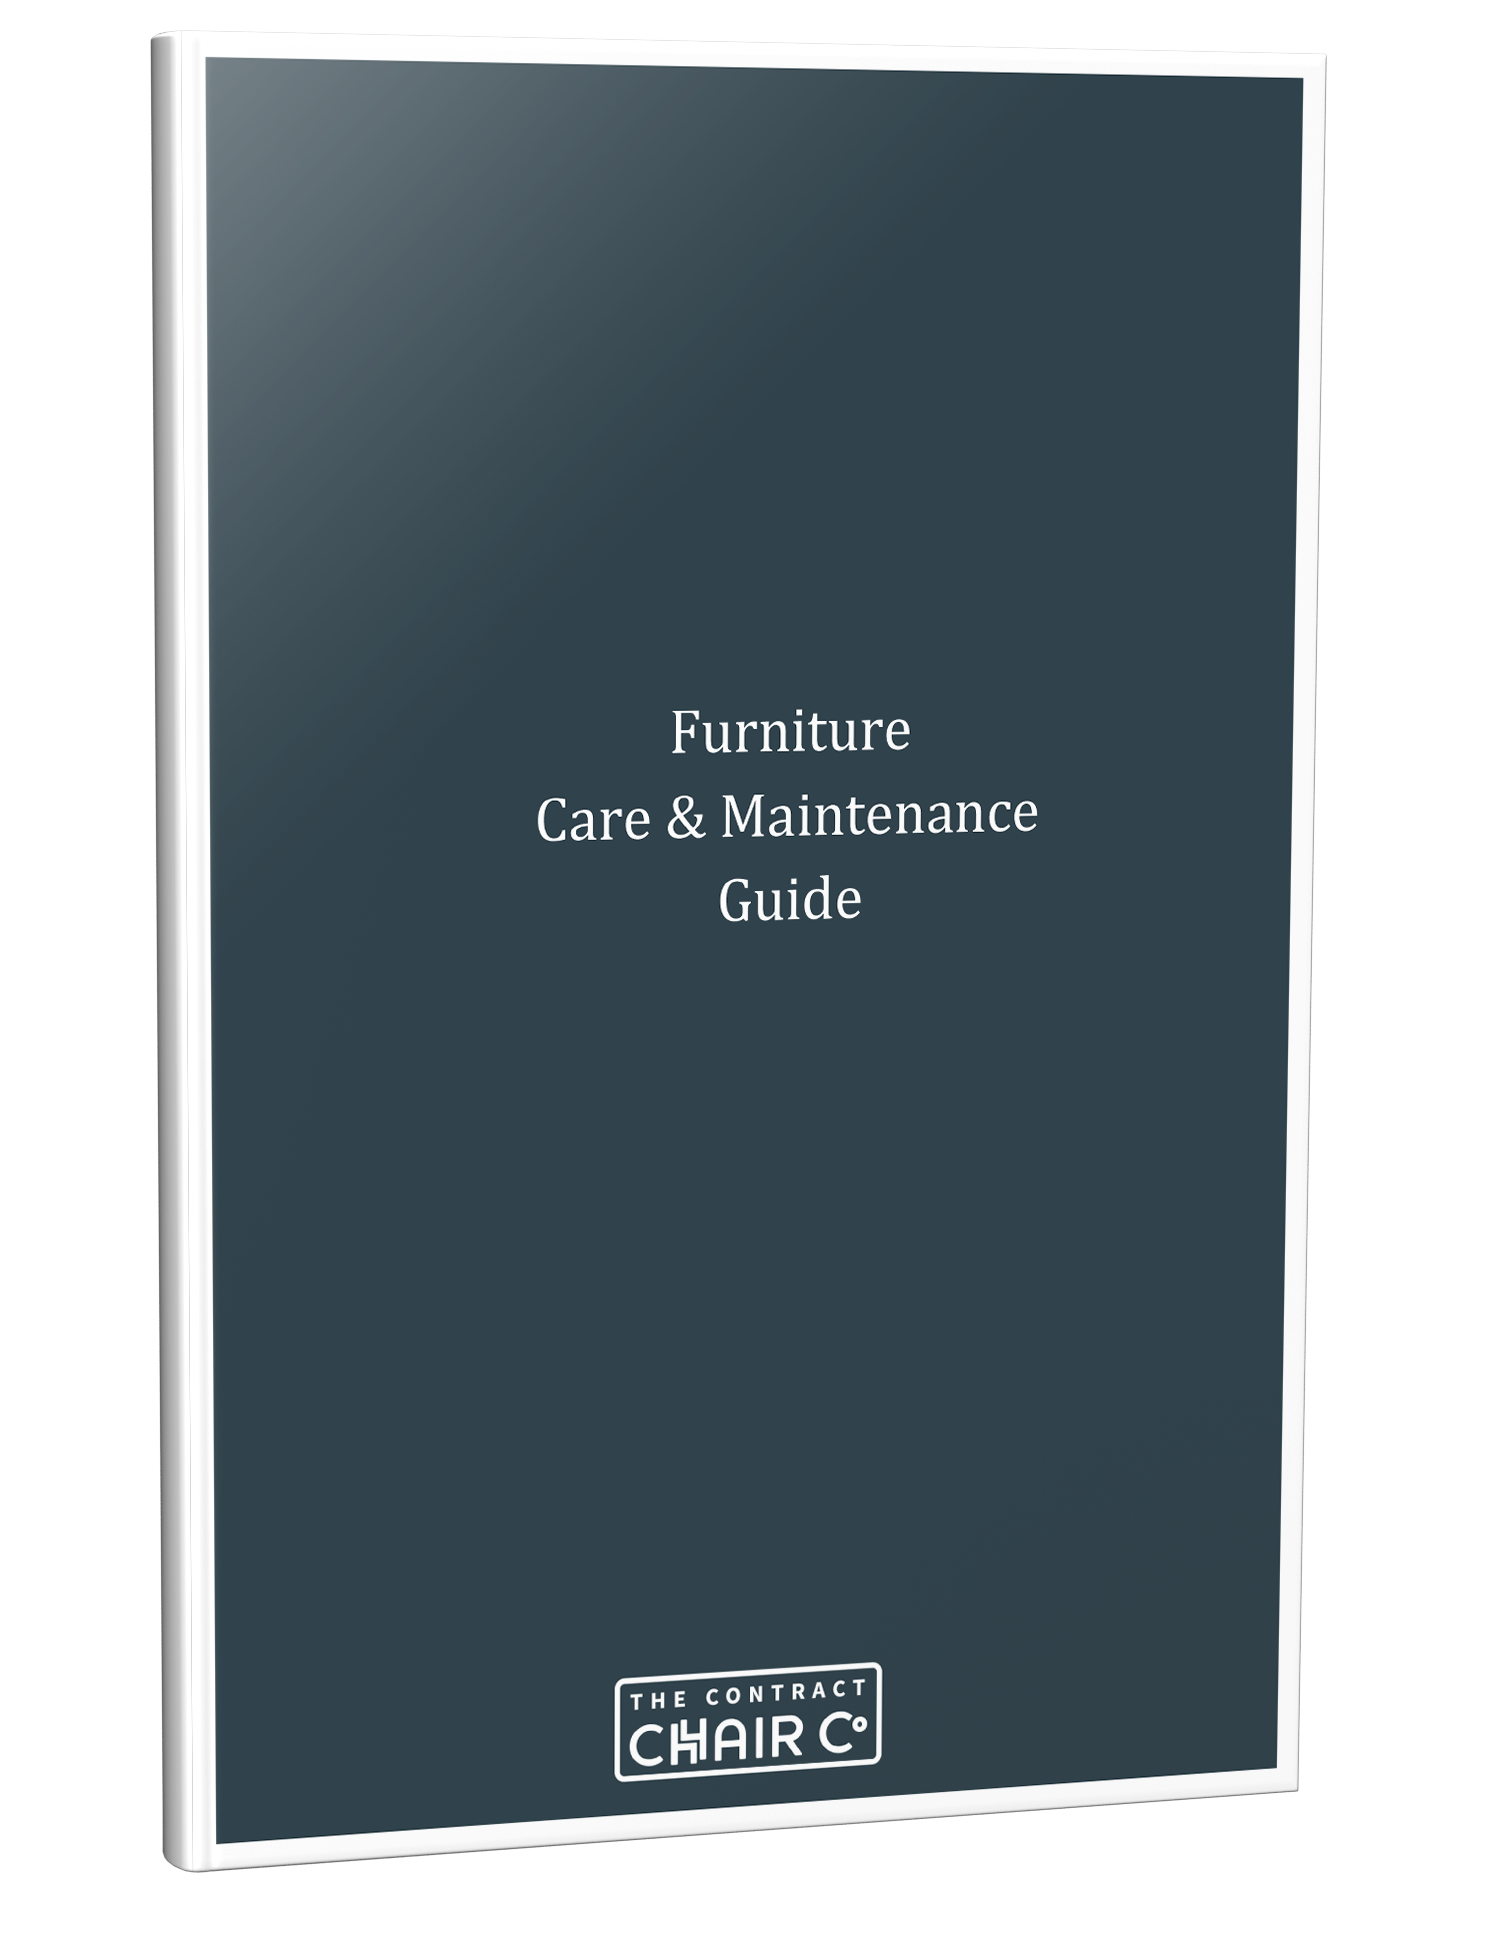 LP Hospitality Furniture Care & Maintenance Guide